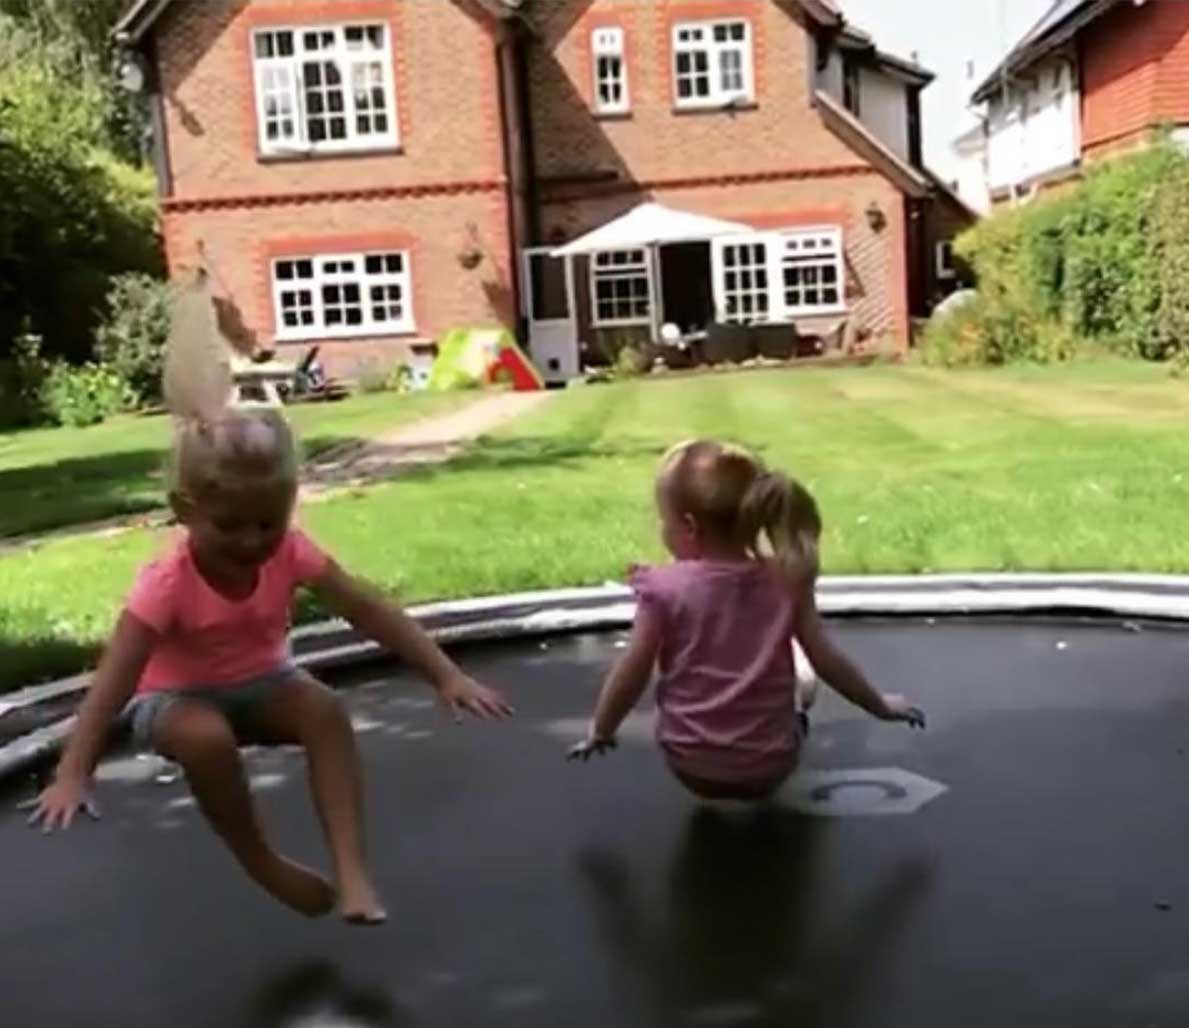 children on sunken trampoline